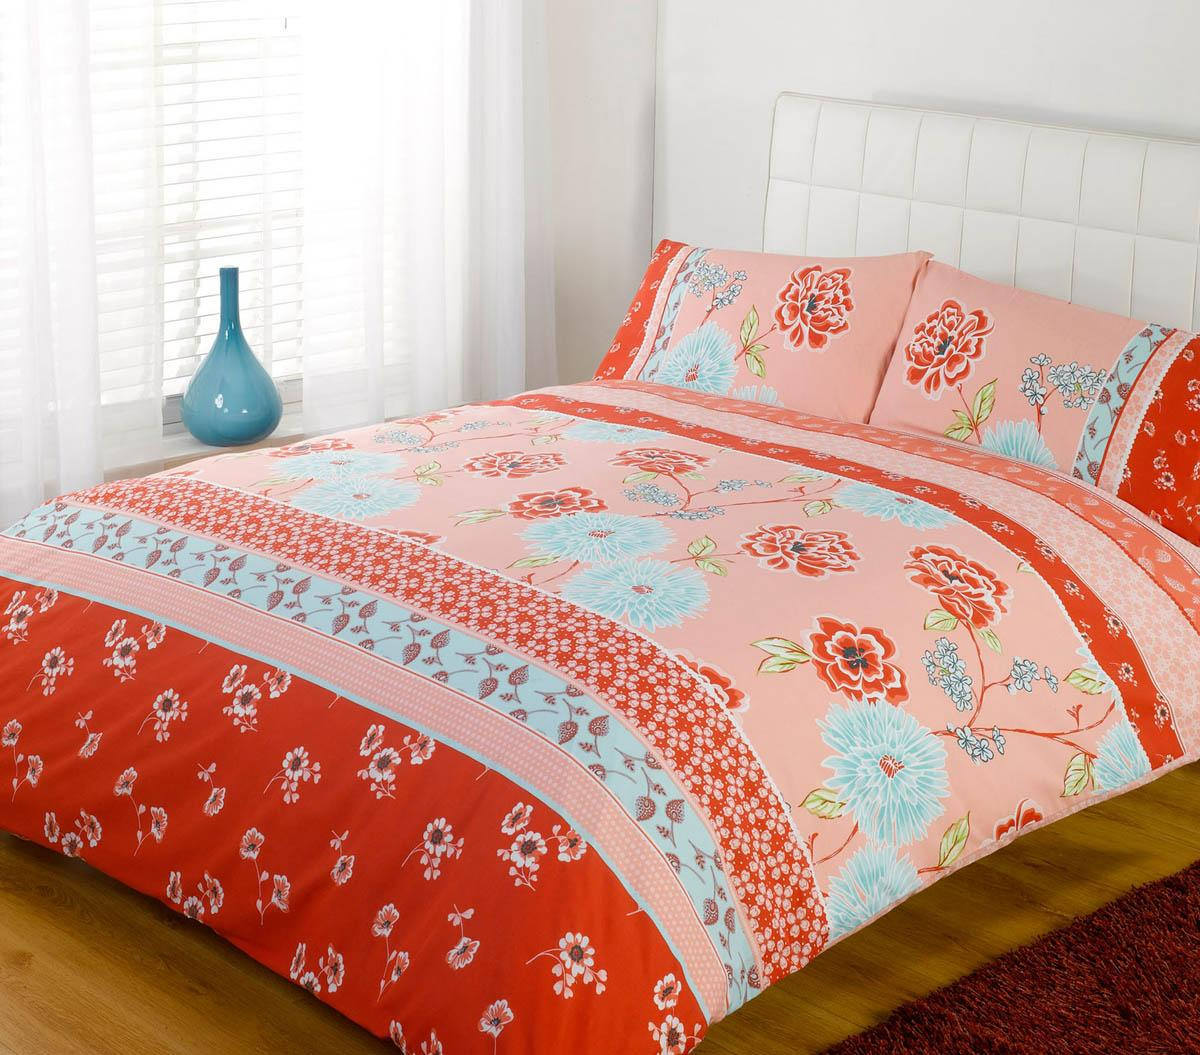 lola duvet cover set red  free uk delivery  terrys fabrics - lola printed duvet cover set